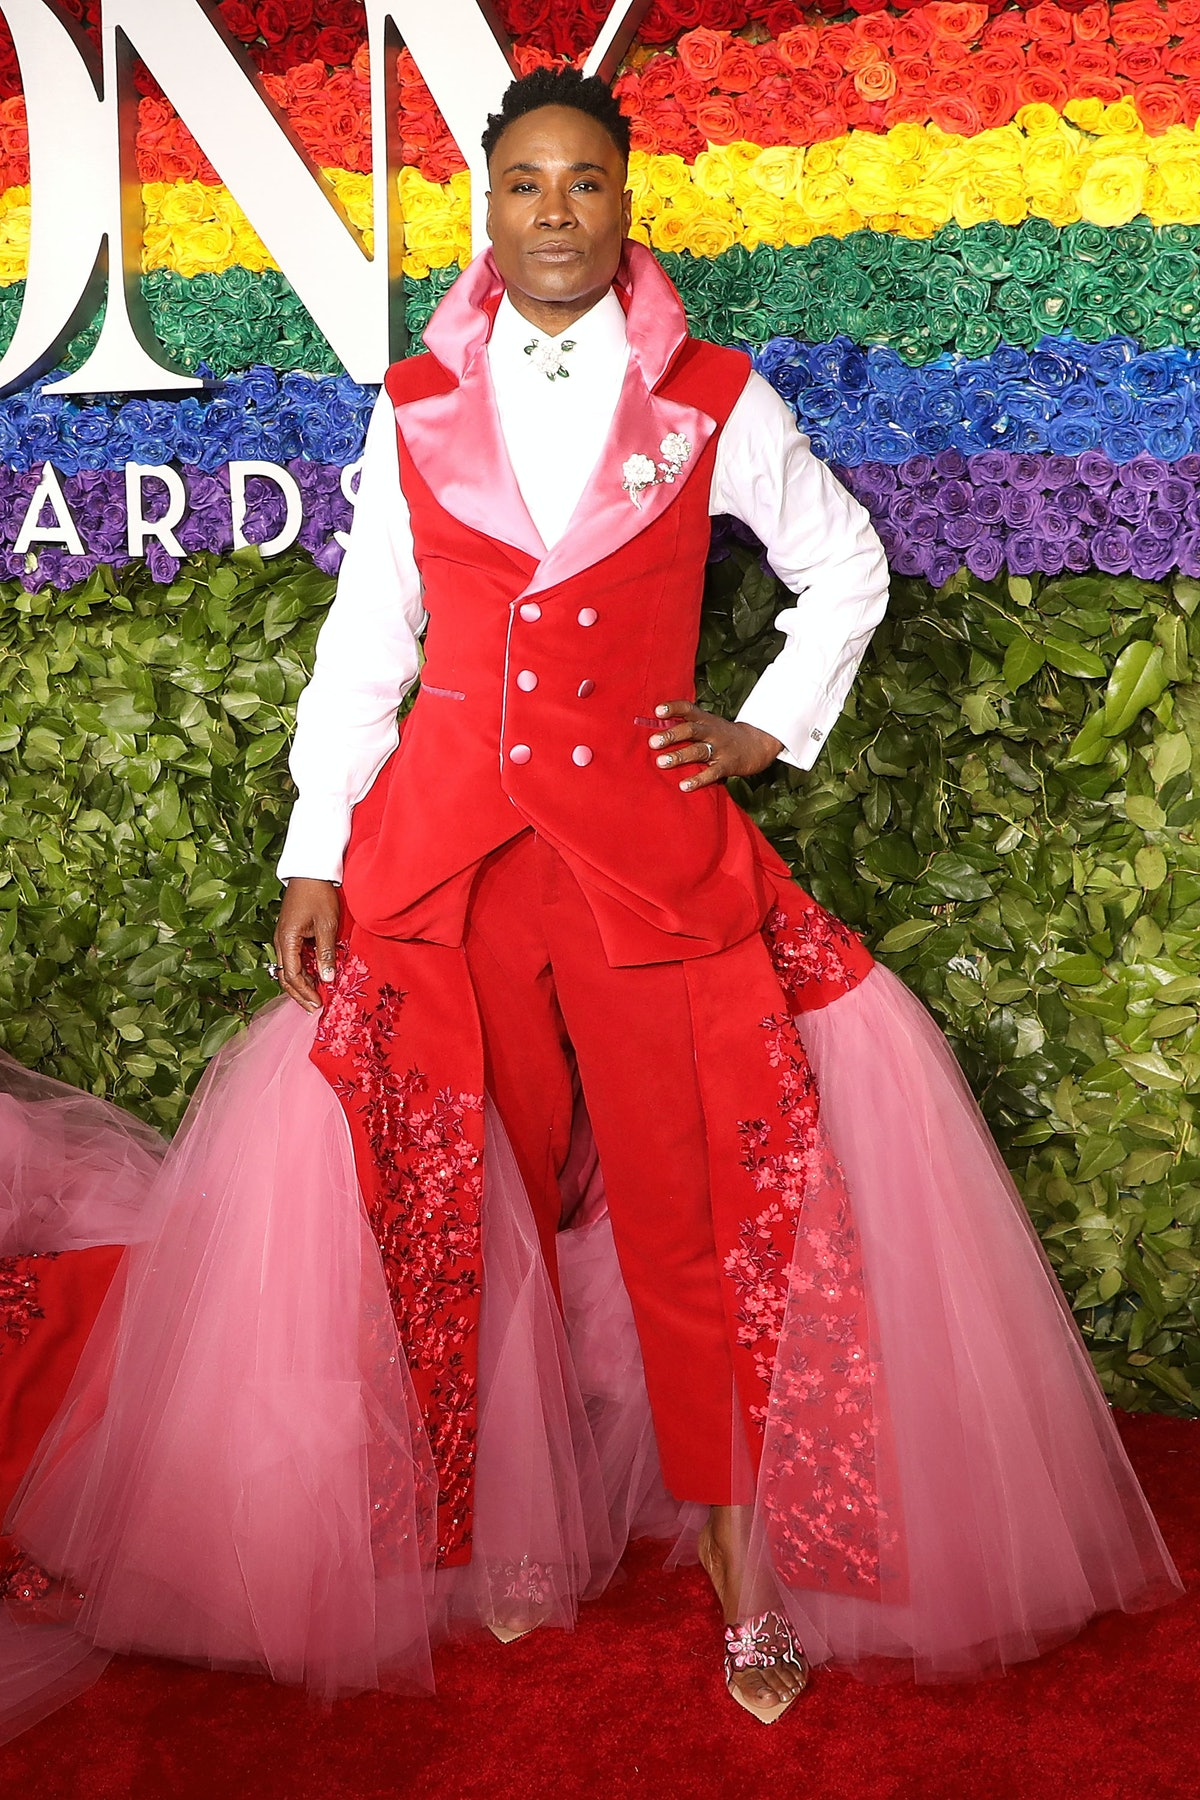 NEW YORK, NY - JUNE 09:  Billy Porter attends the 2019 Tony Awards at Radio City Music Hall on June 9, 2019 in New York City.  (Photo by Taylor Hill/FilmMagic,)